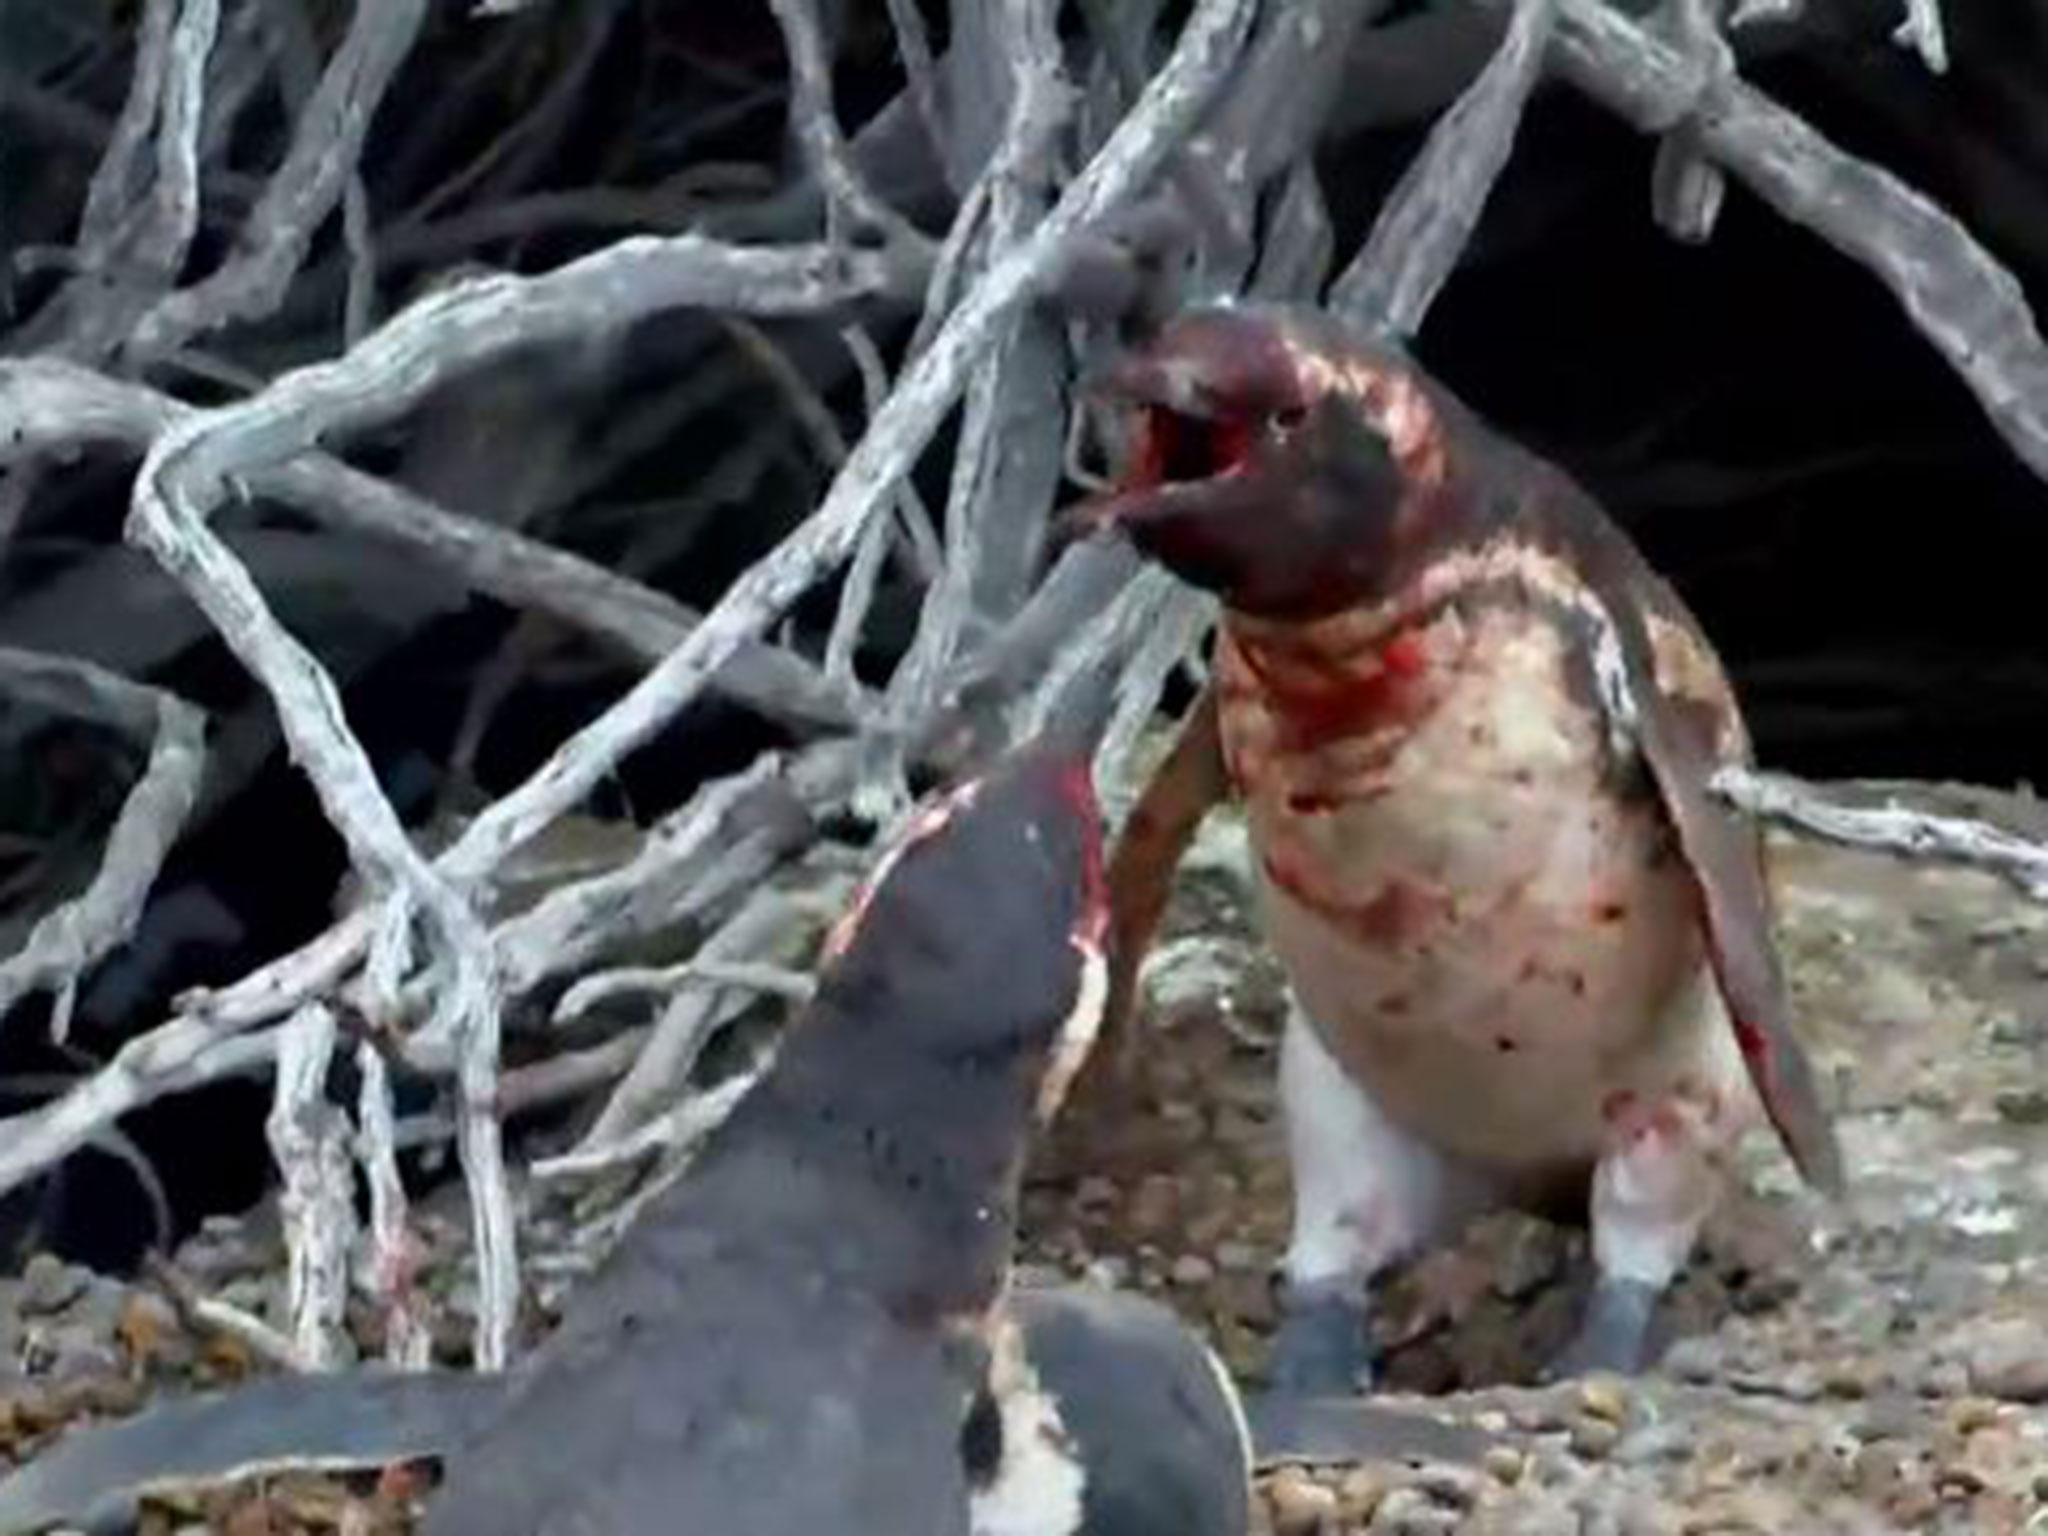 Video shows penguin getting into huge fight over adulterous female after her mate comes home